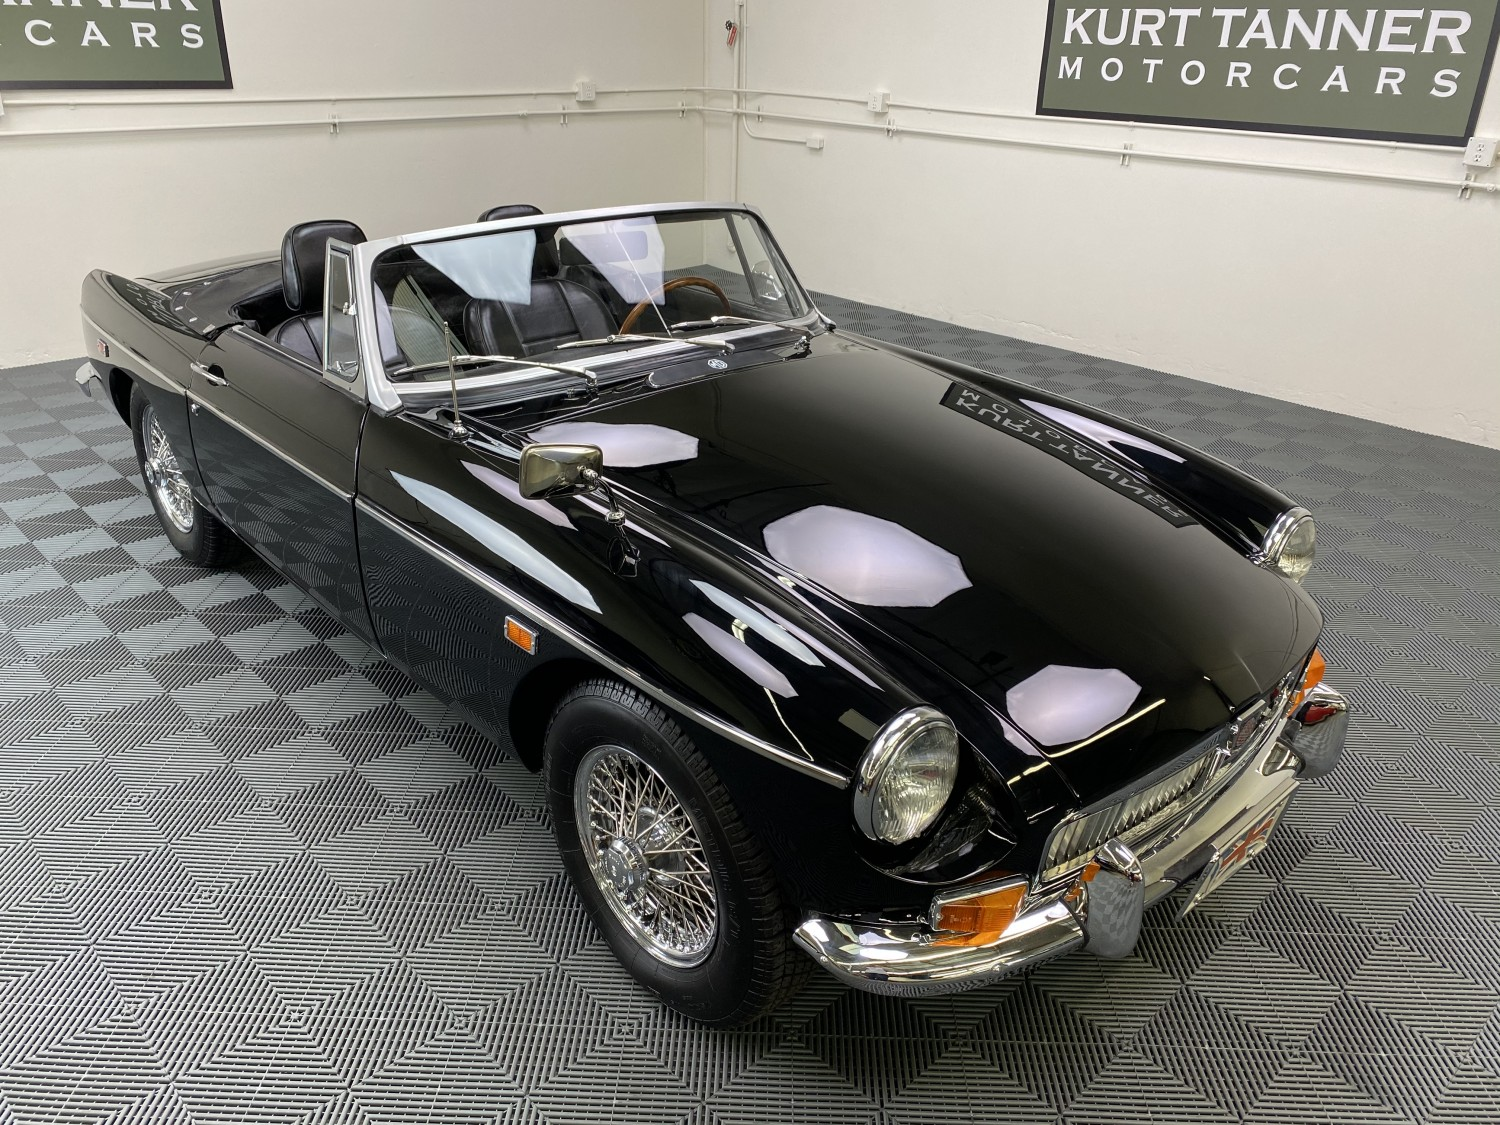 1969 MGB ROADSTER. BLACK WITH BLACK TRIM AND SOFT TOP, TOP BOOT, AND TONNEAU COVER. 4-SPEED. CHROME WIRE WHEELS. SUPERBLY RESTORED CAR FROM THE SAME FAMILY OF THE LAST 35 YEARS. 79,941 MILES.